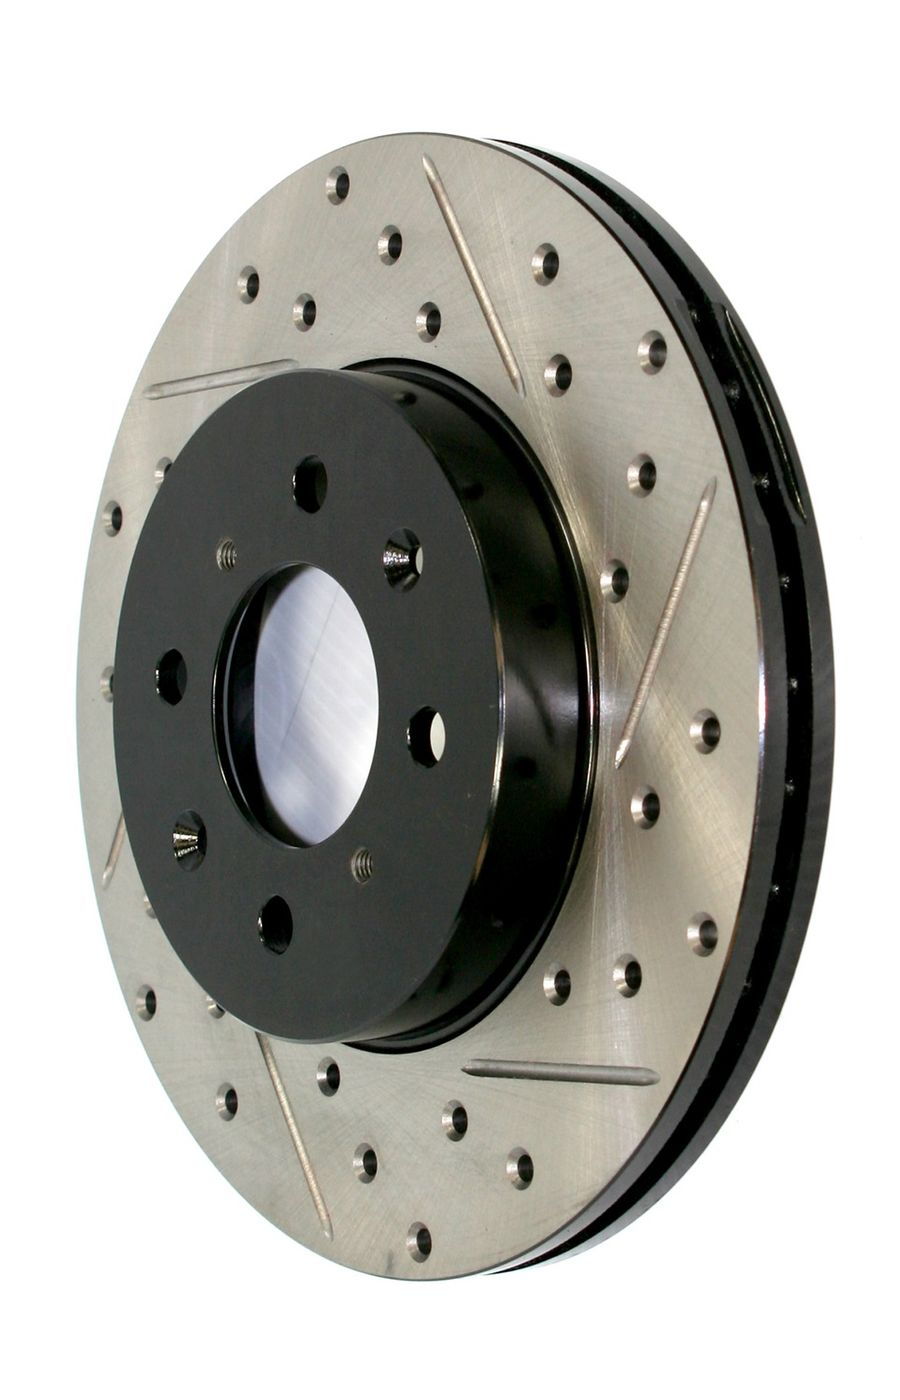 Lexus LS400 StopTech Disc Brake Rotors Brakes StopTech Sport Drilled/Slotted Disc 127.44068R